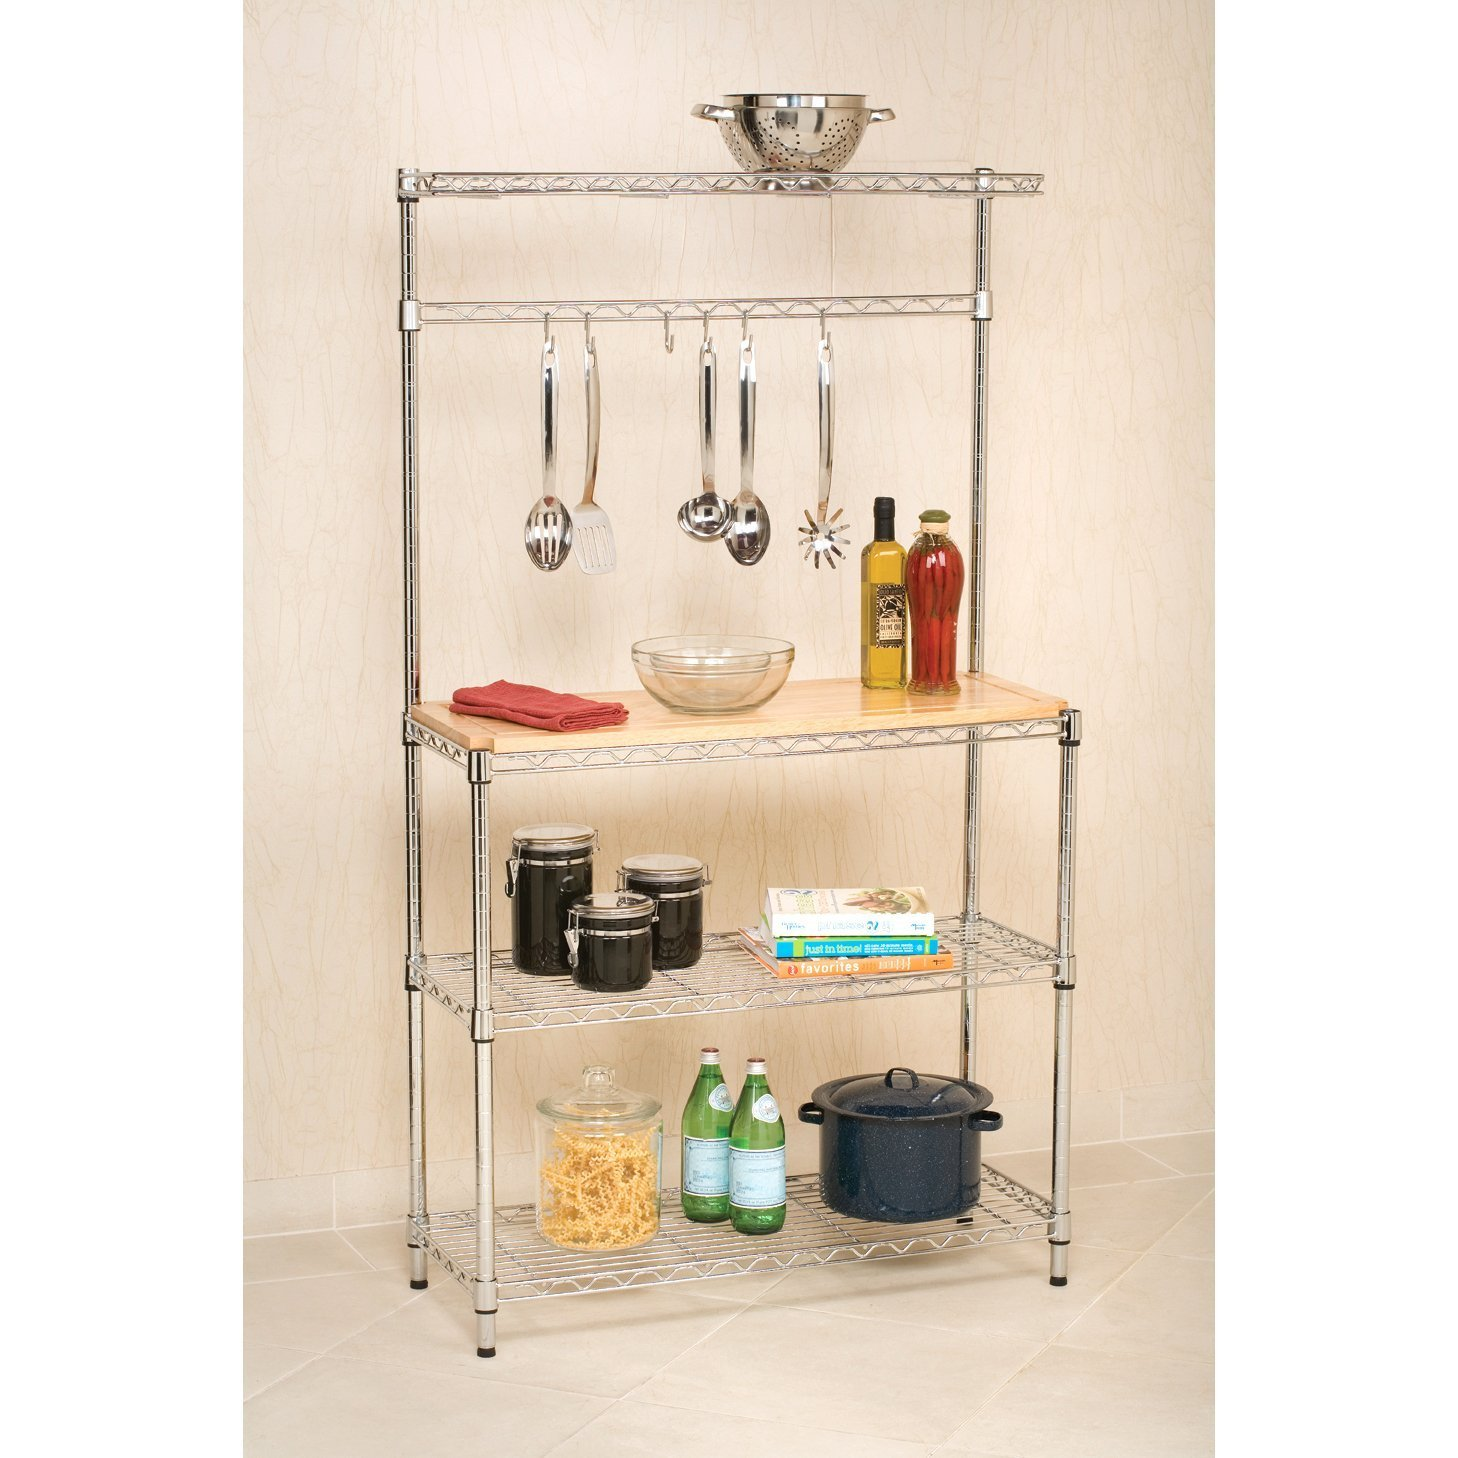 Amazon.com: Bakers Rack with Cutting Board and Storage Chrome ...